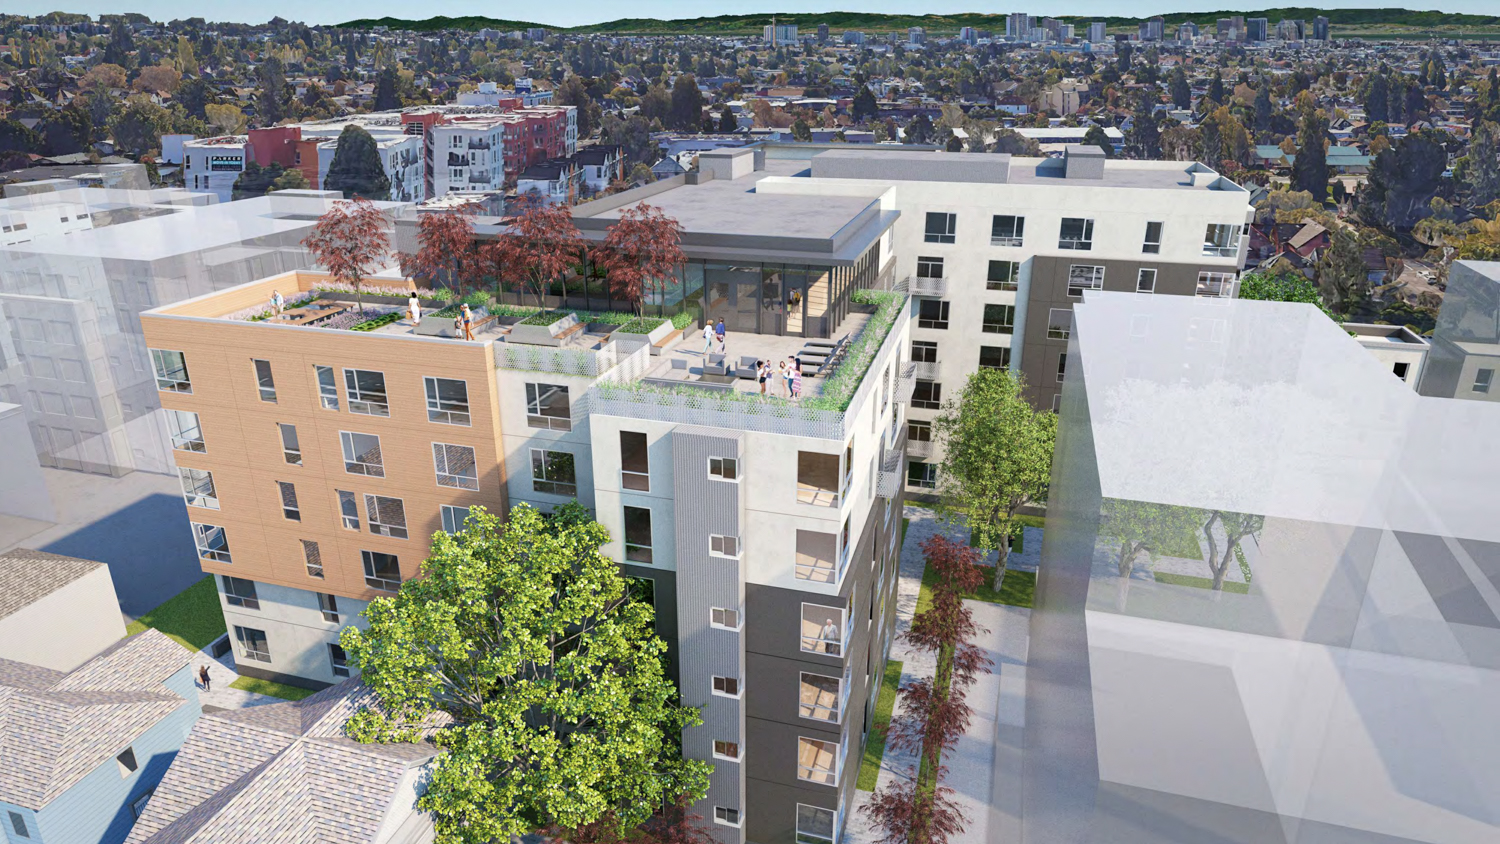 2015 Blake Street rooftop terrace, rendering courtesy Lowney Architects